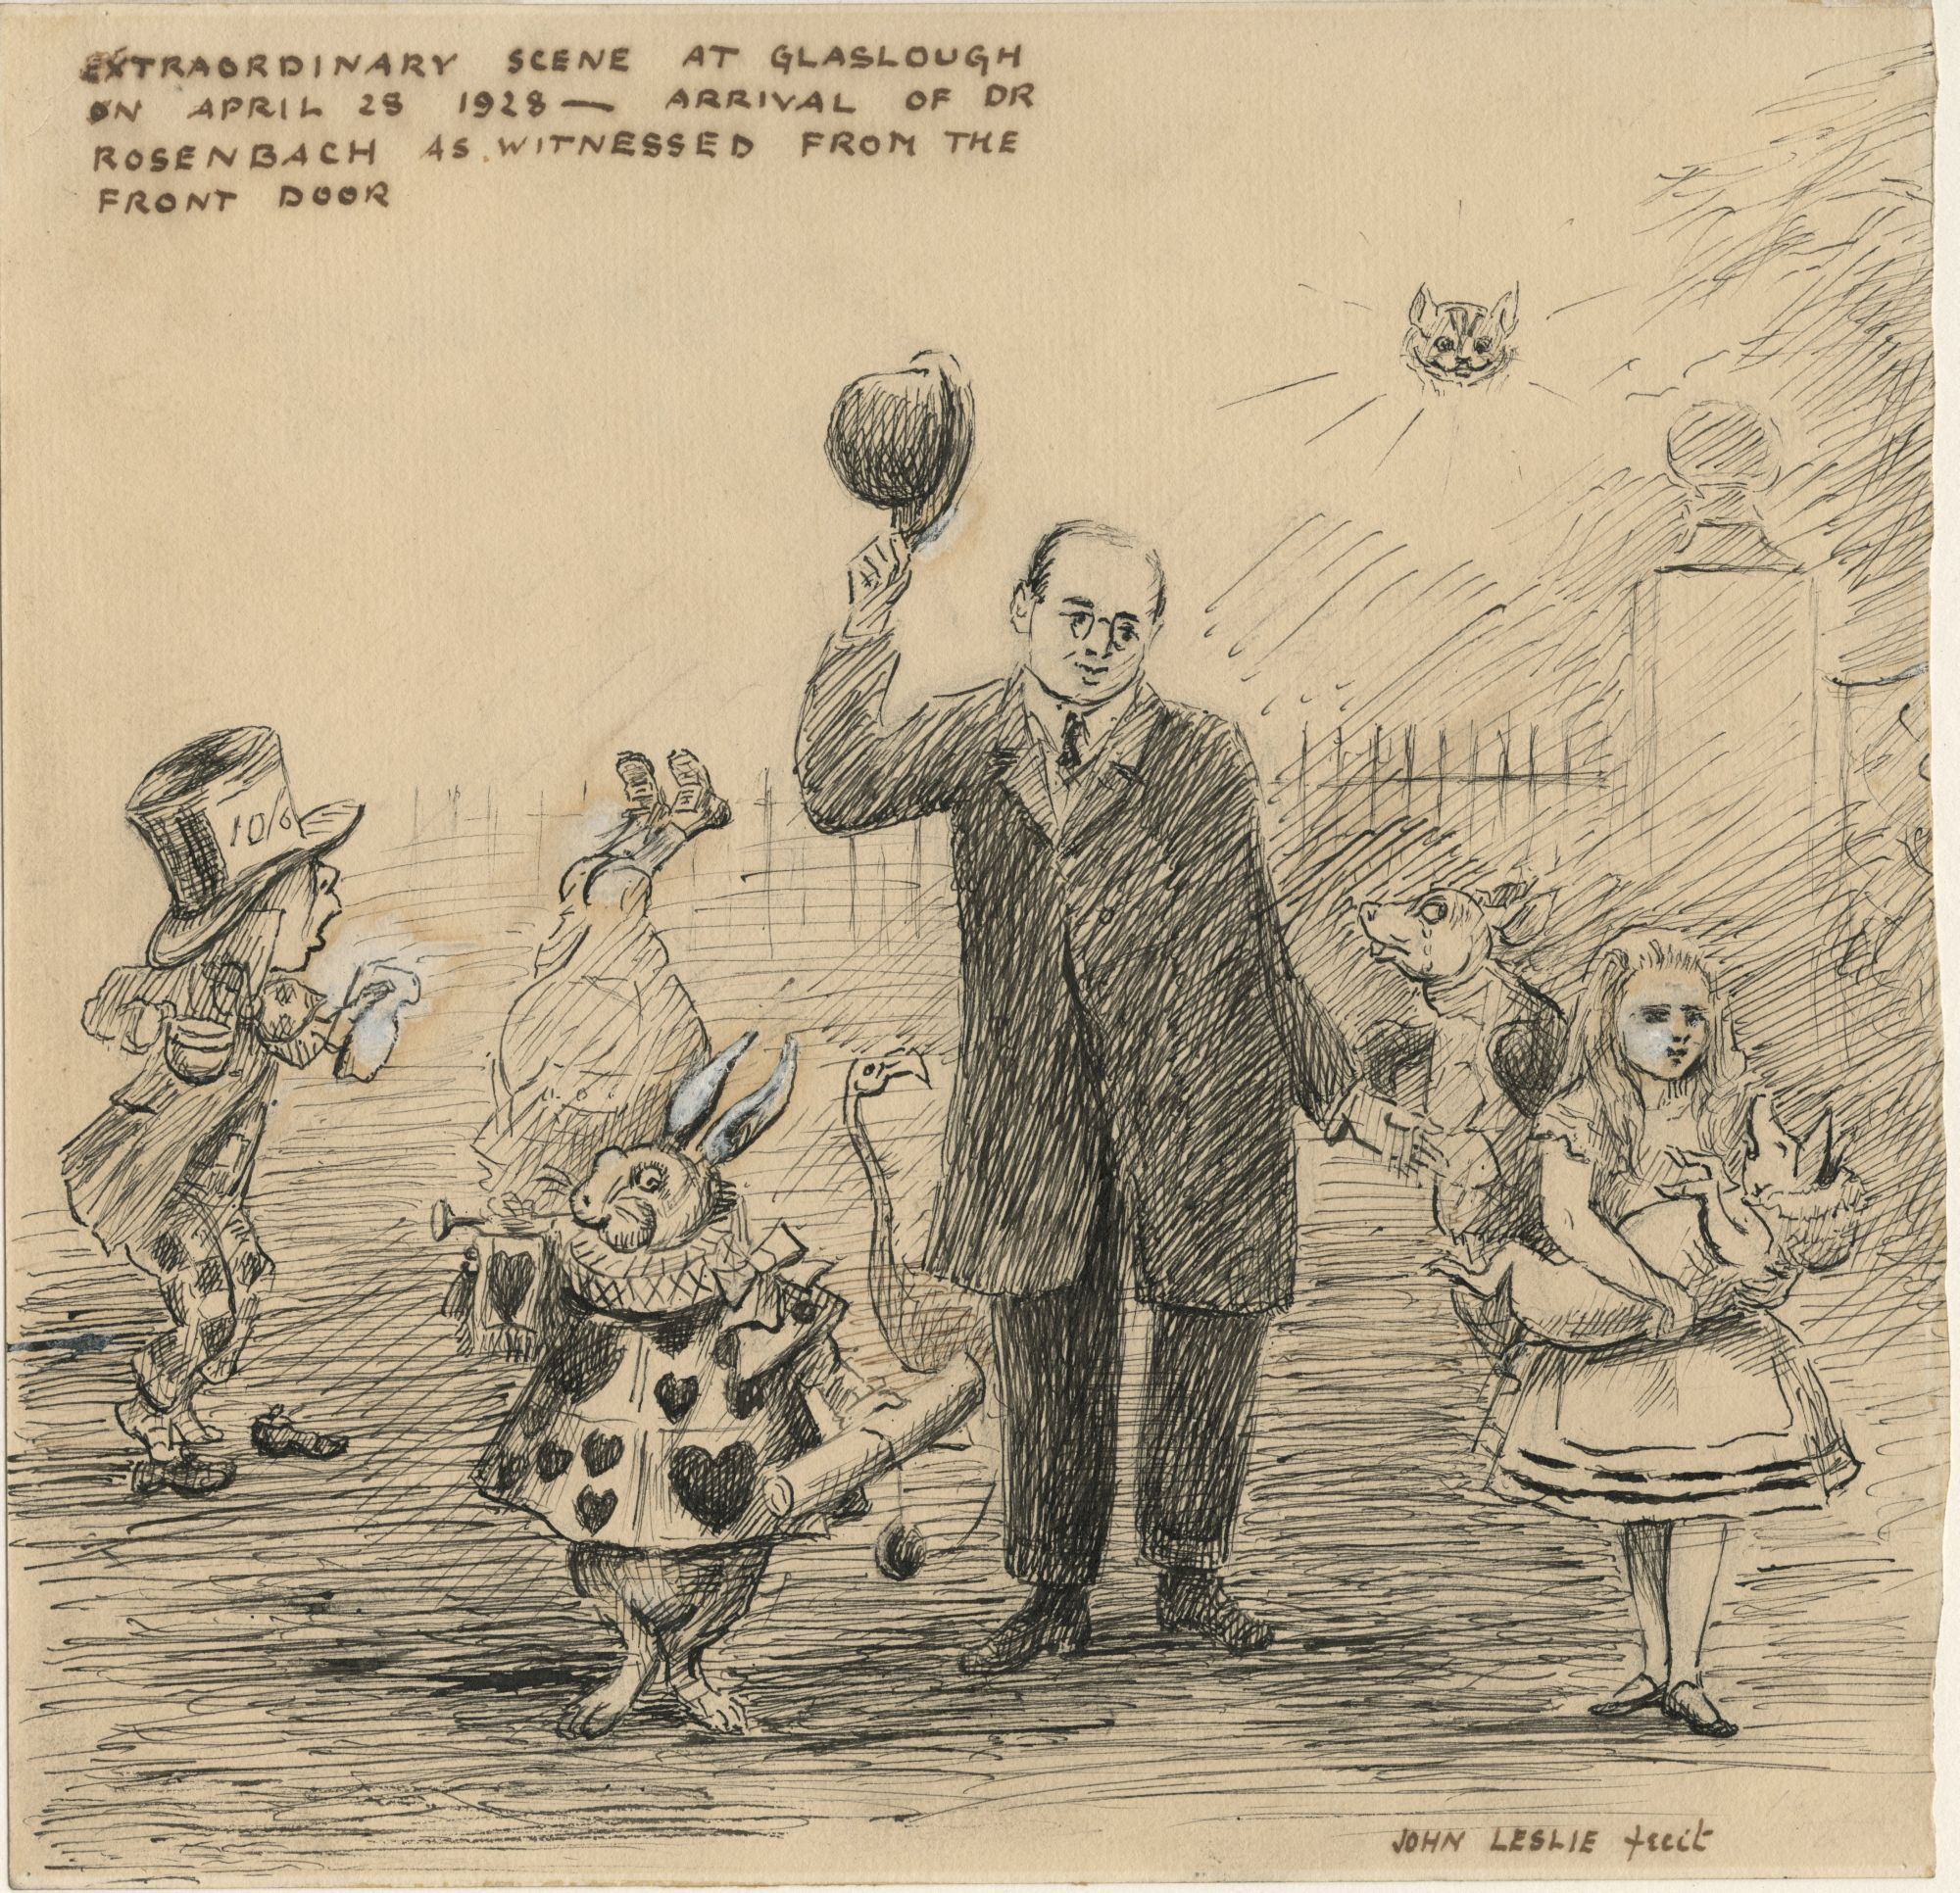 Illustration by Sir John Leslie of Dr Rosenbach surrounded by characters from Alice in Wonderland